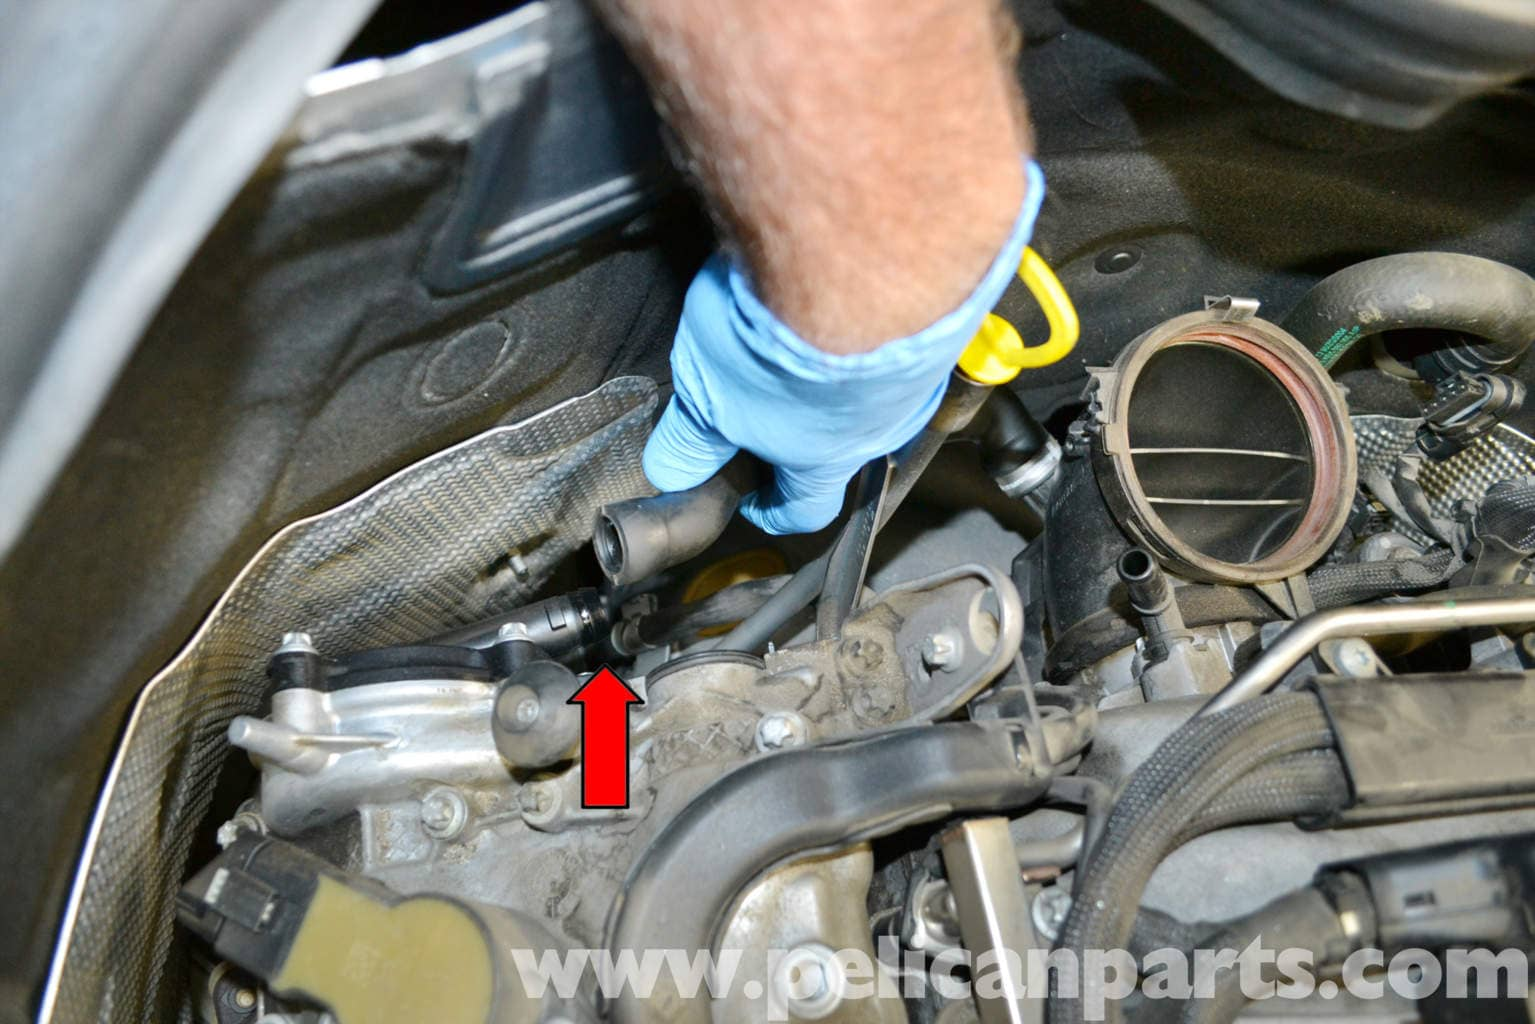 mercedes benz w204 breather hose and cover replacement 2008 mercedes ml320 fuel filter location